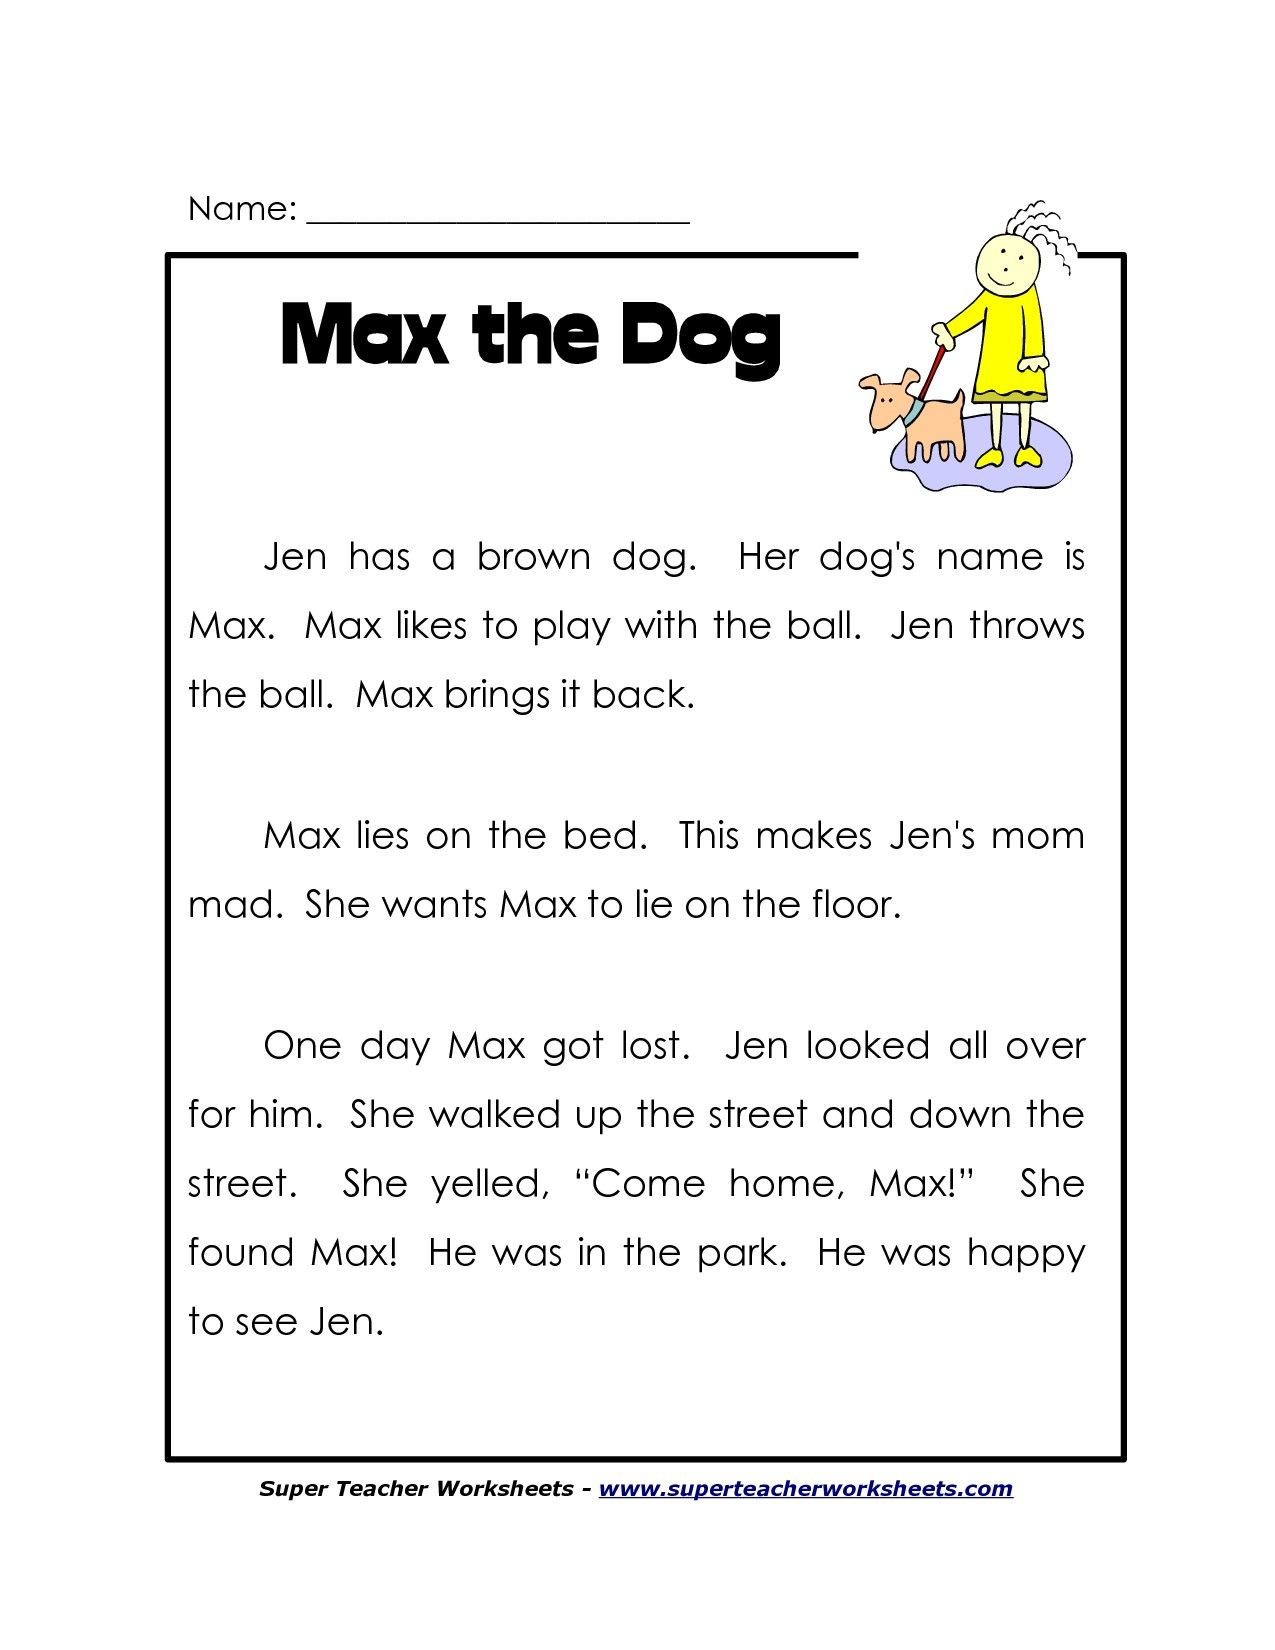 Uncategorized Super Worksheets 1st grade reading worksheets free lots more on superteacherworksheets com